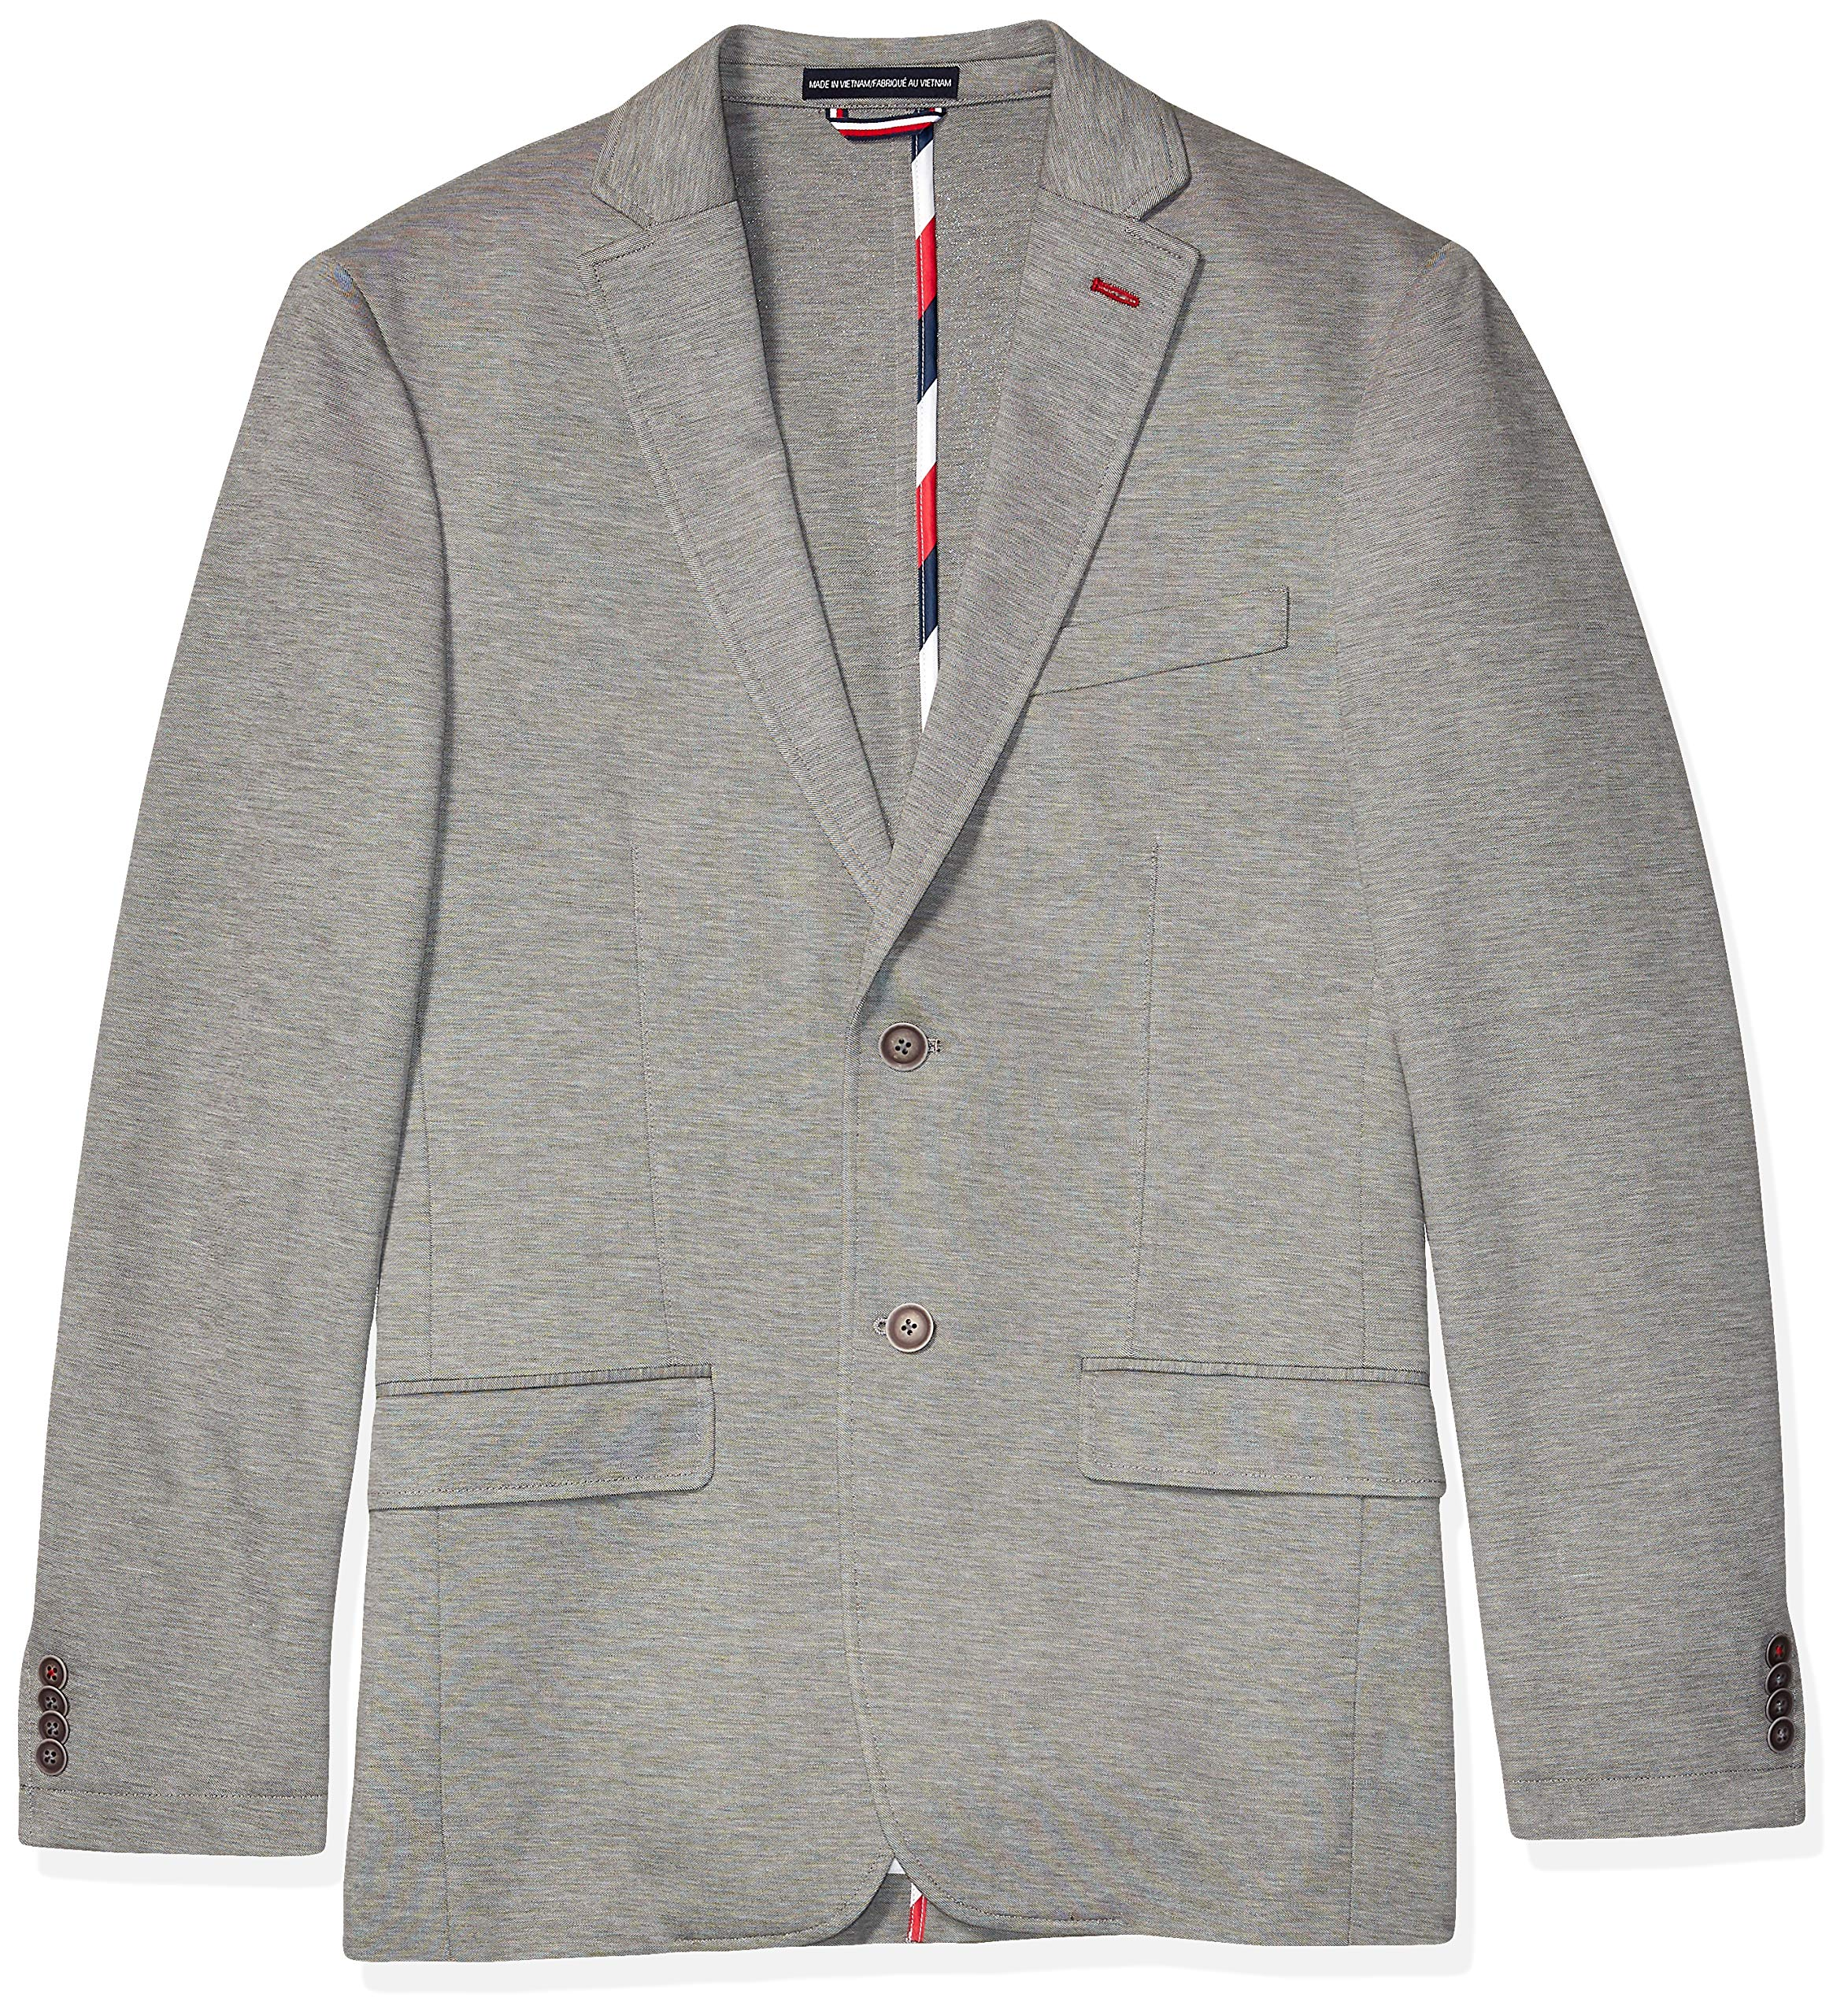 Tommy Hilfiger Men's Big and Tall Soft Jacket, Light Gray, 48R by Tommy Hilfiger